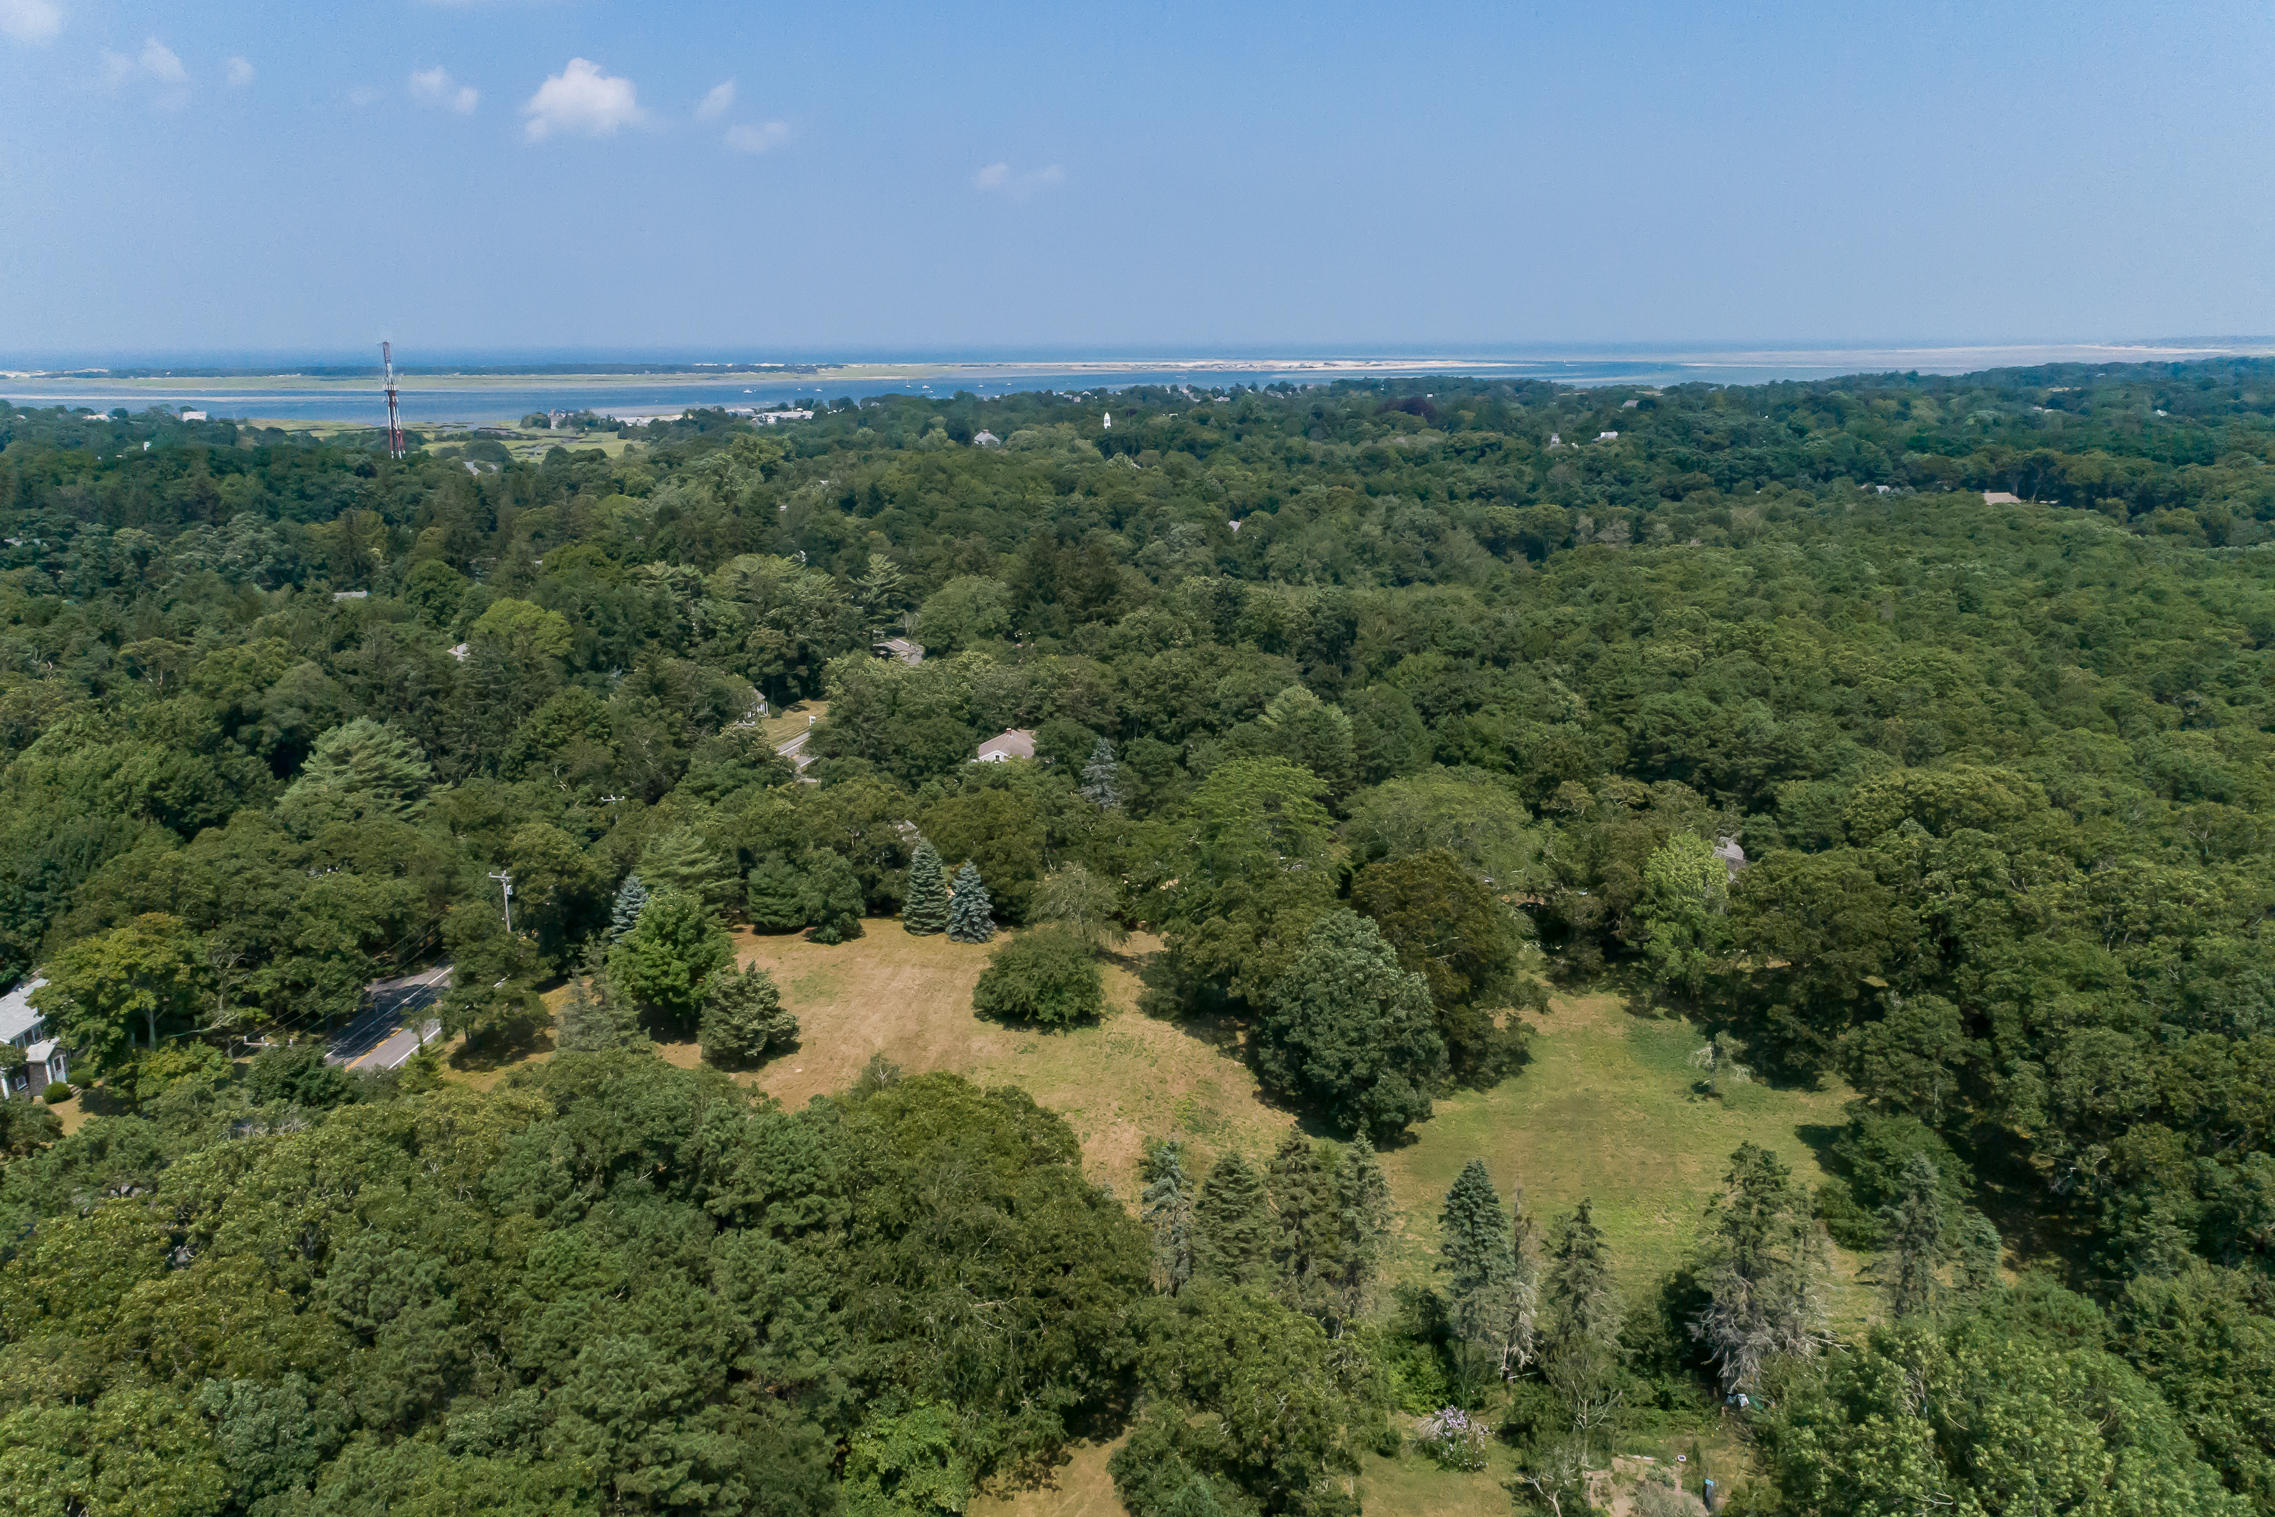 1526 HYANNIS ROAD, BARNSTABLE, MA 02630